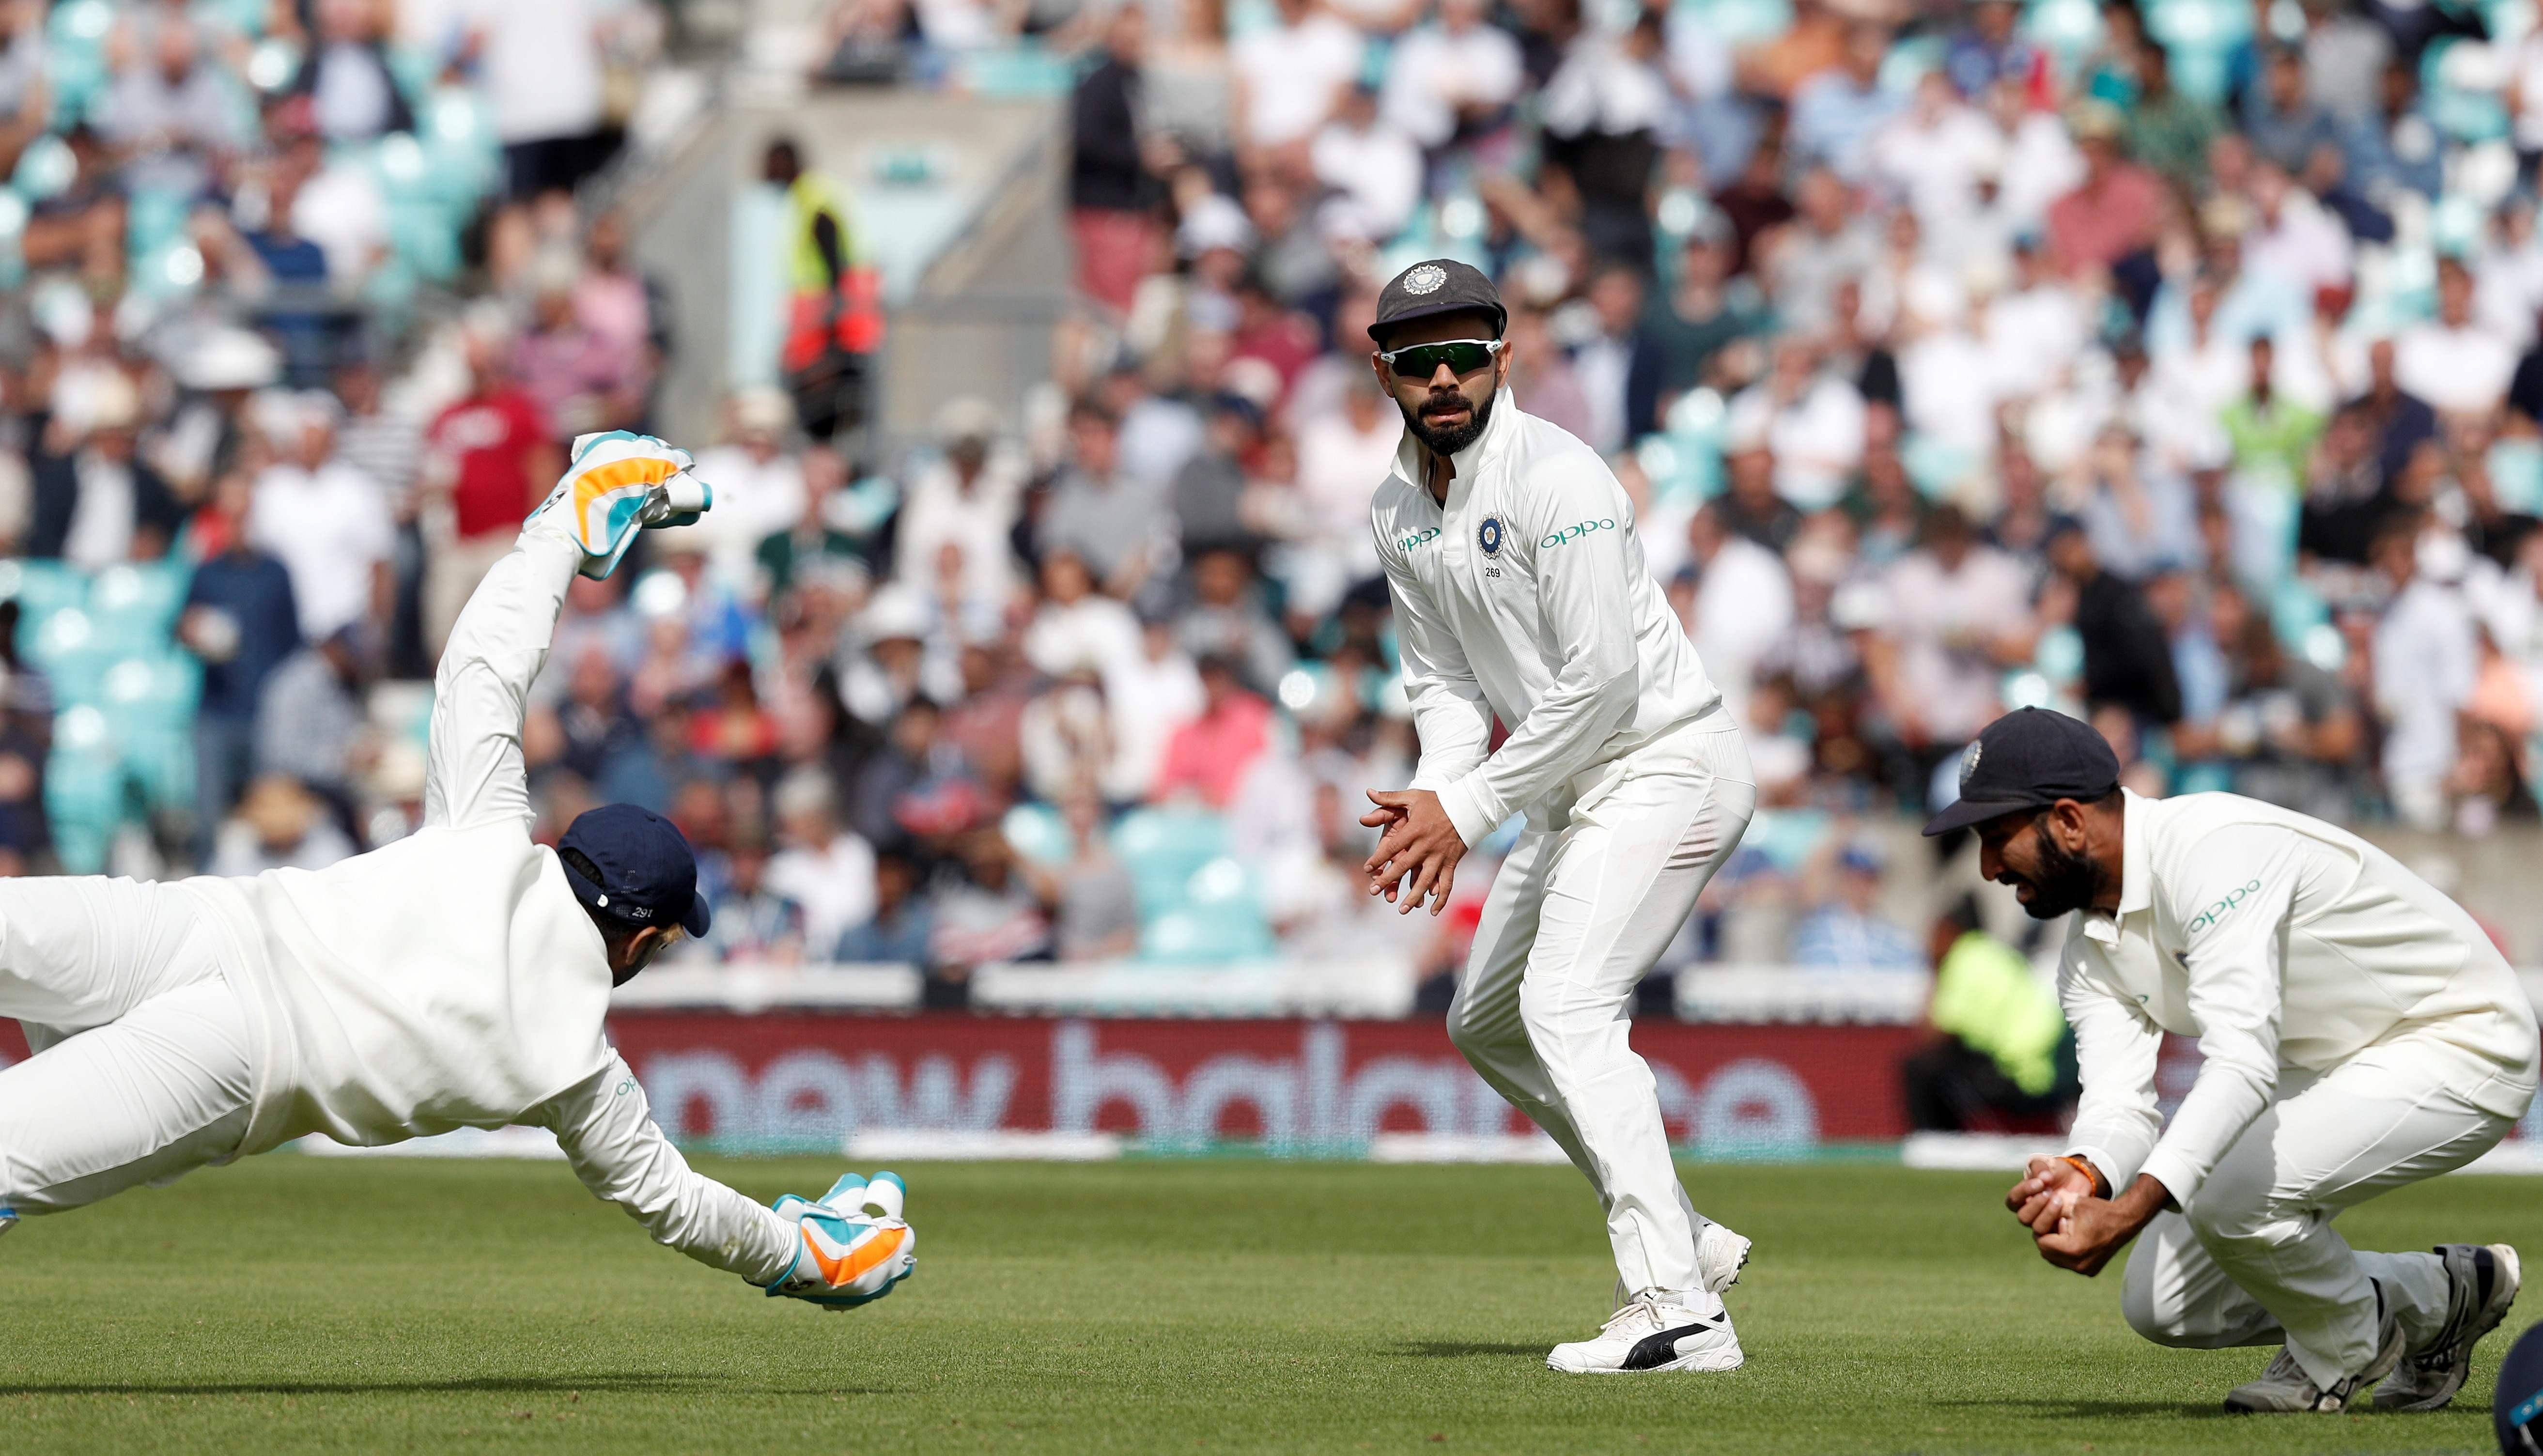 It was another frustrating day for India as a difficult summer in England draws towards its conclusion